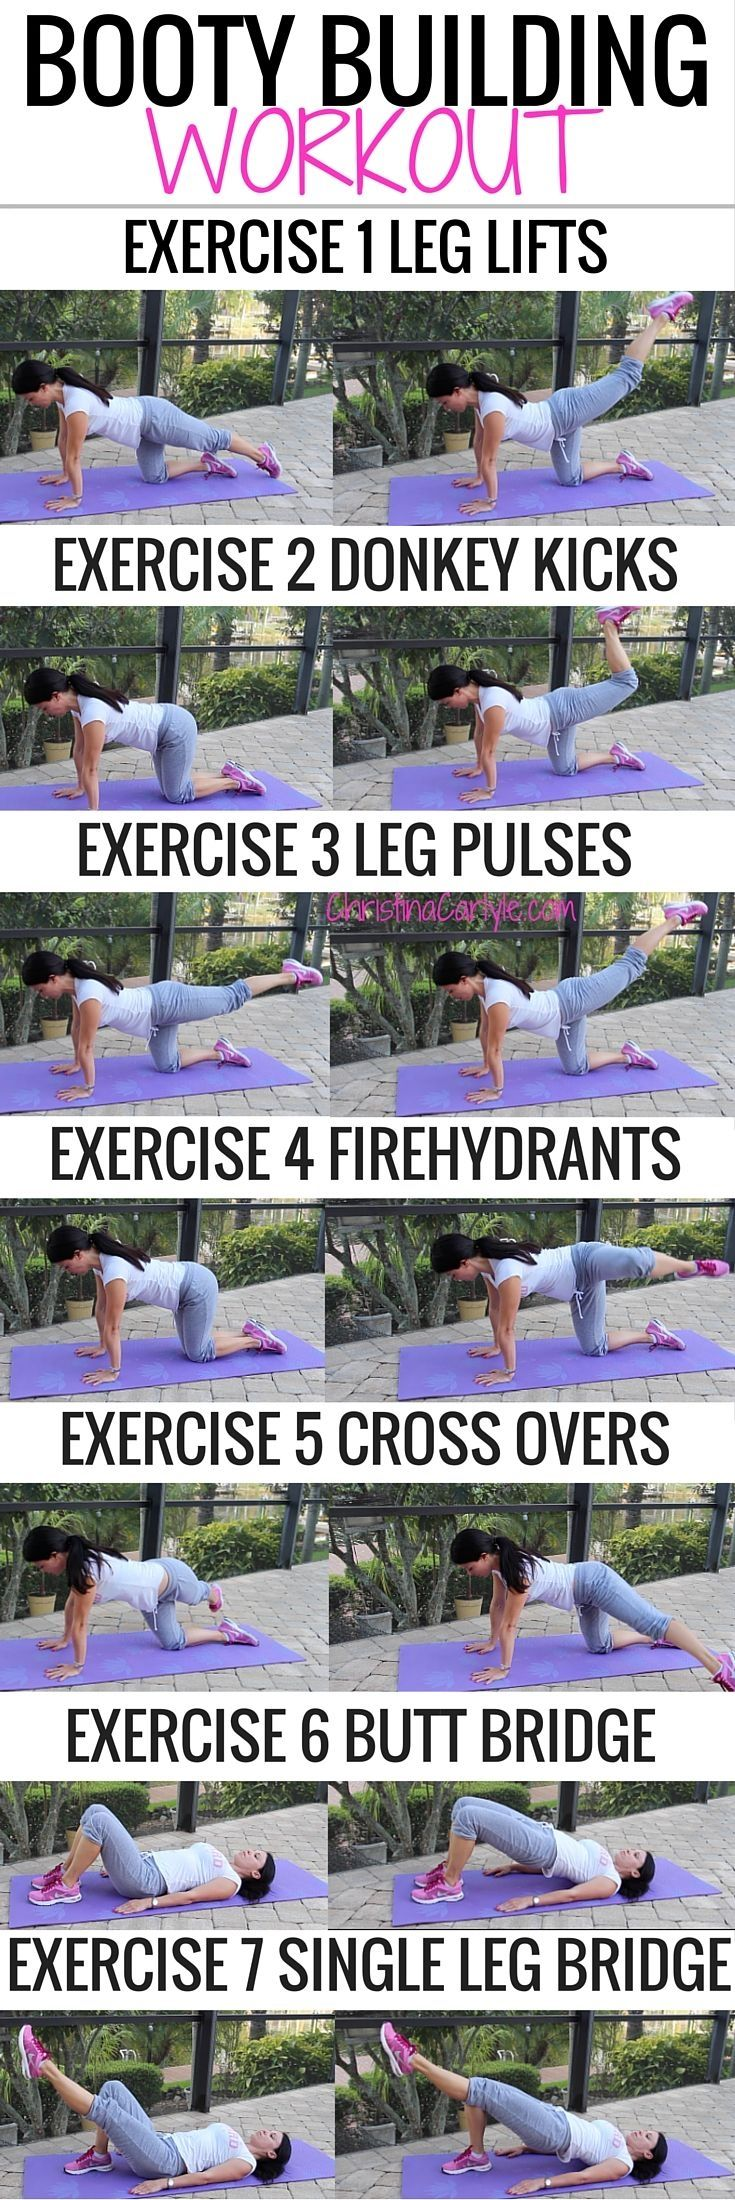 Butt Exercises that really work! Do them all for a complete booty building workout : ) #weightlosssmoothies